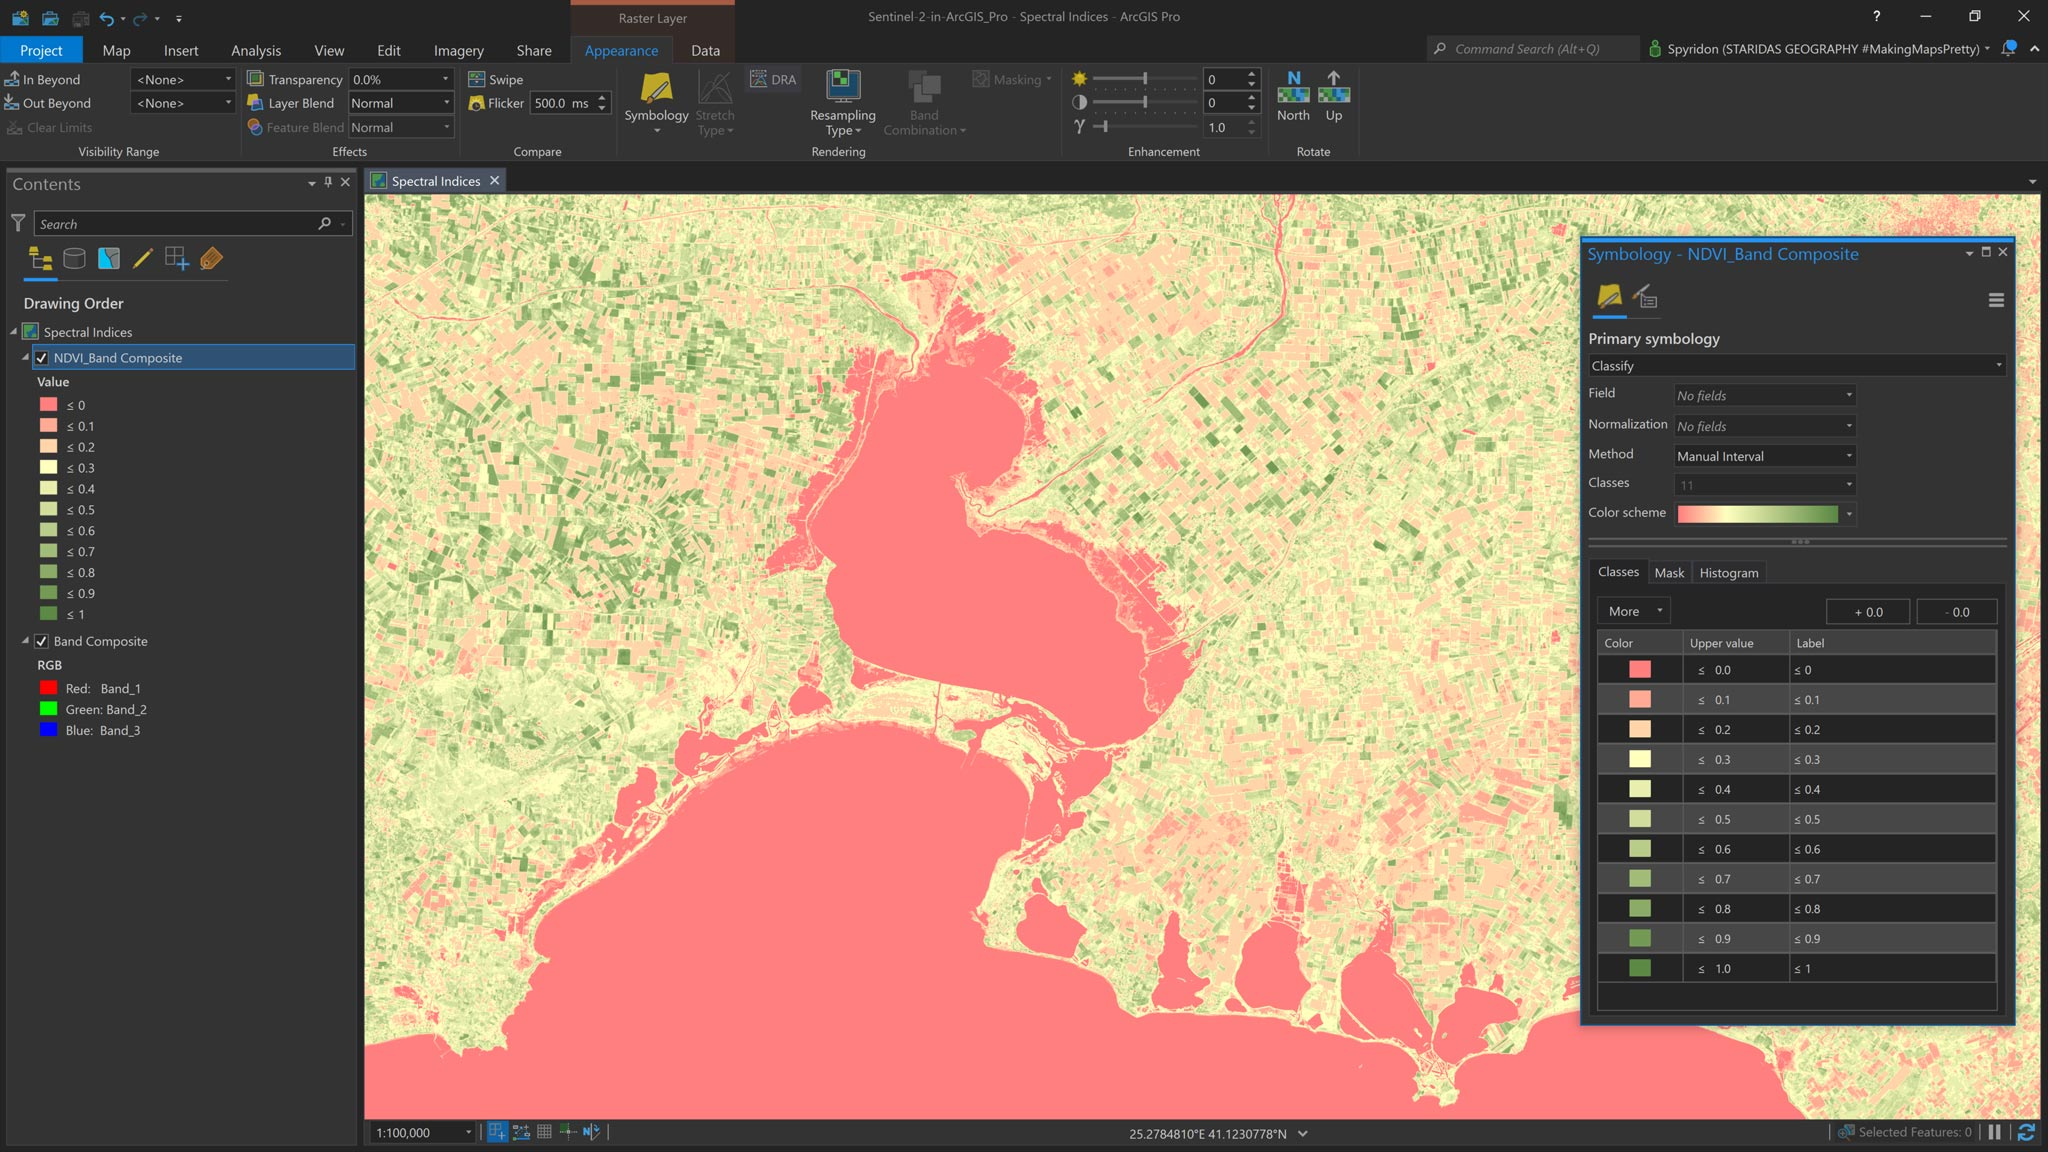 Picture 5: Styling the NDVI layer.